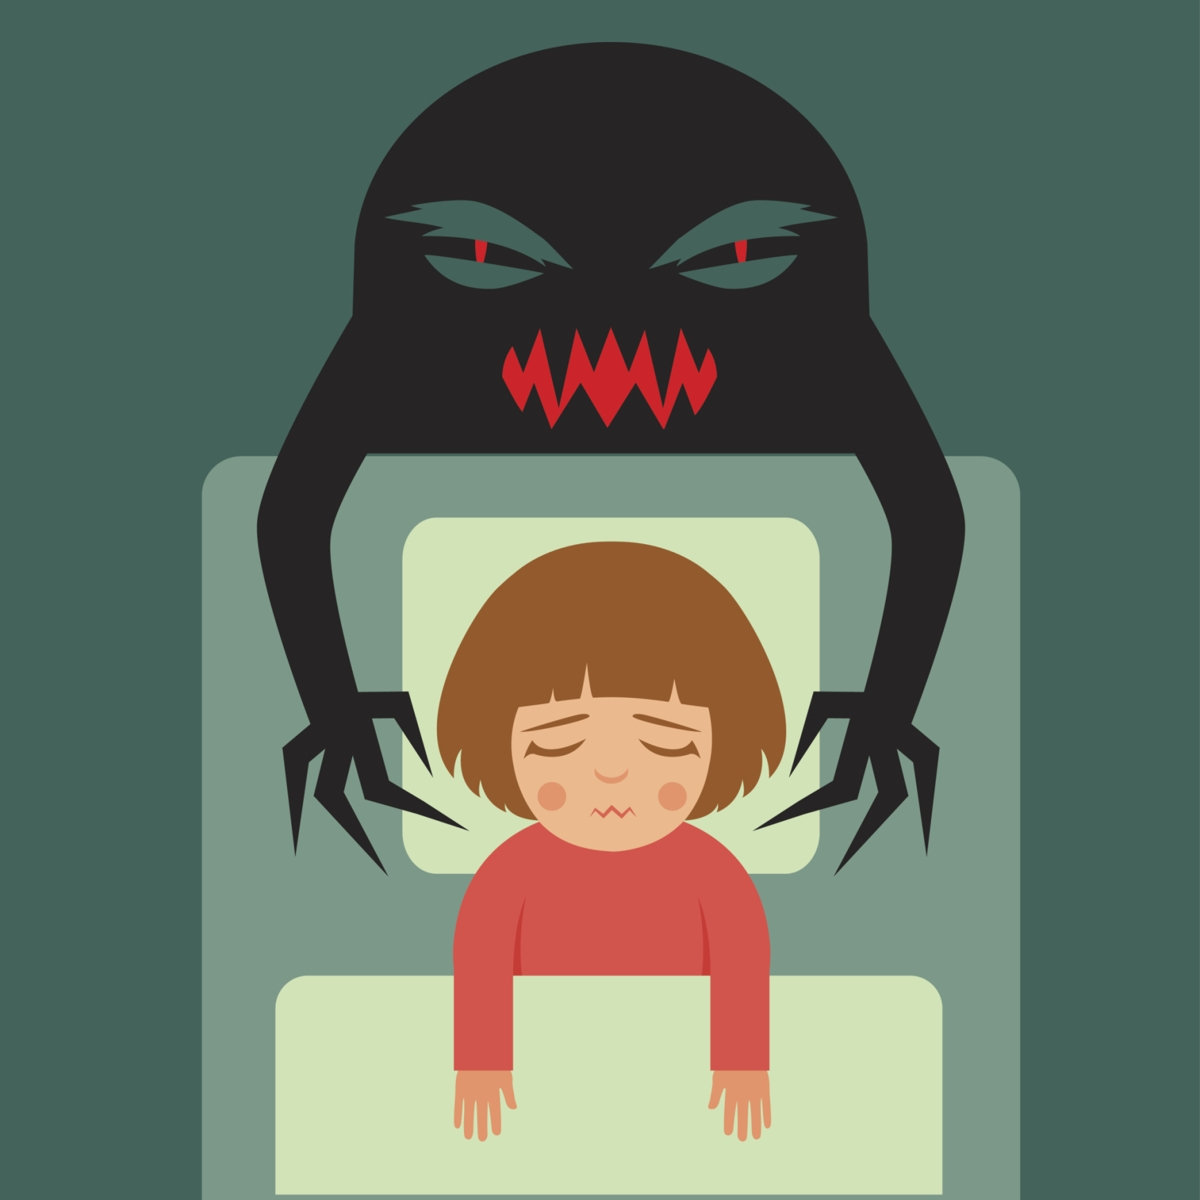 Fear clipart bad dream. Visions from god what